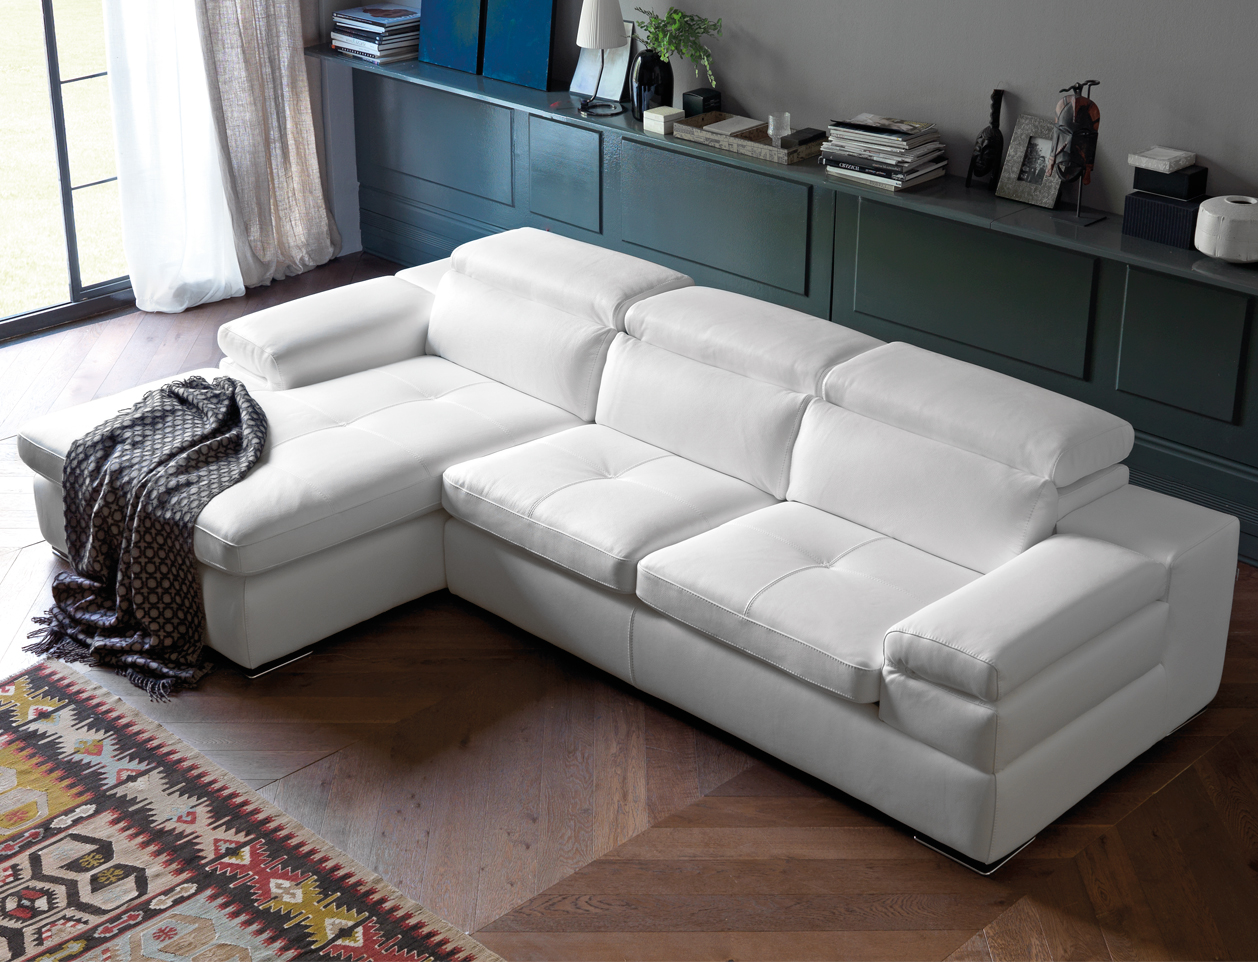 Miro Italian Leather Corner Sofa Left - SOFAITALIA